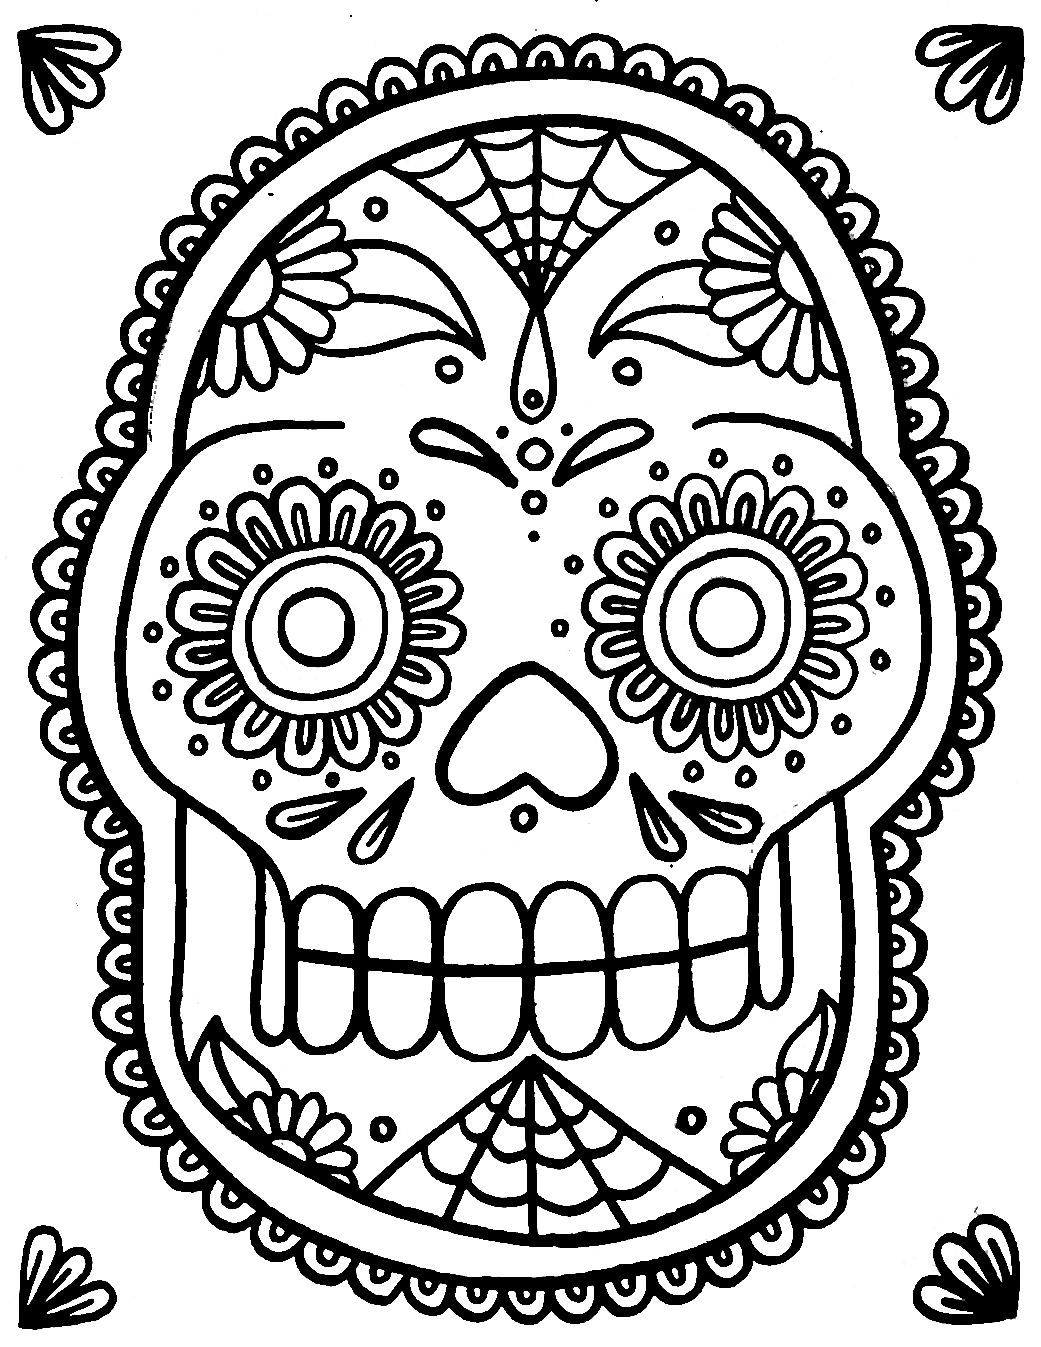 sugar skull coloring pages printable yucca flats nm may 2012 pages sugar coloring skull printable